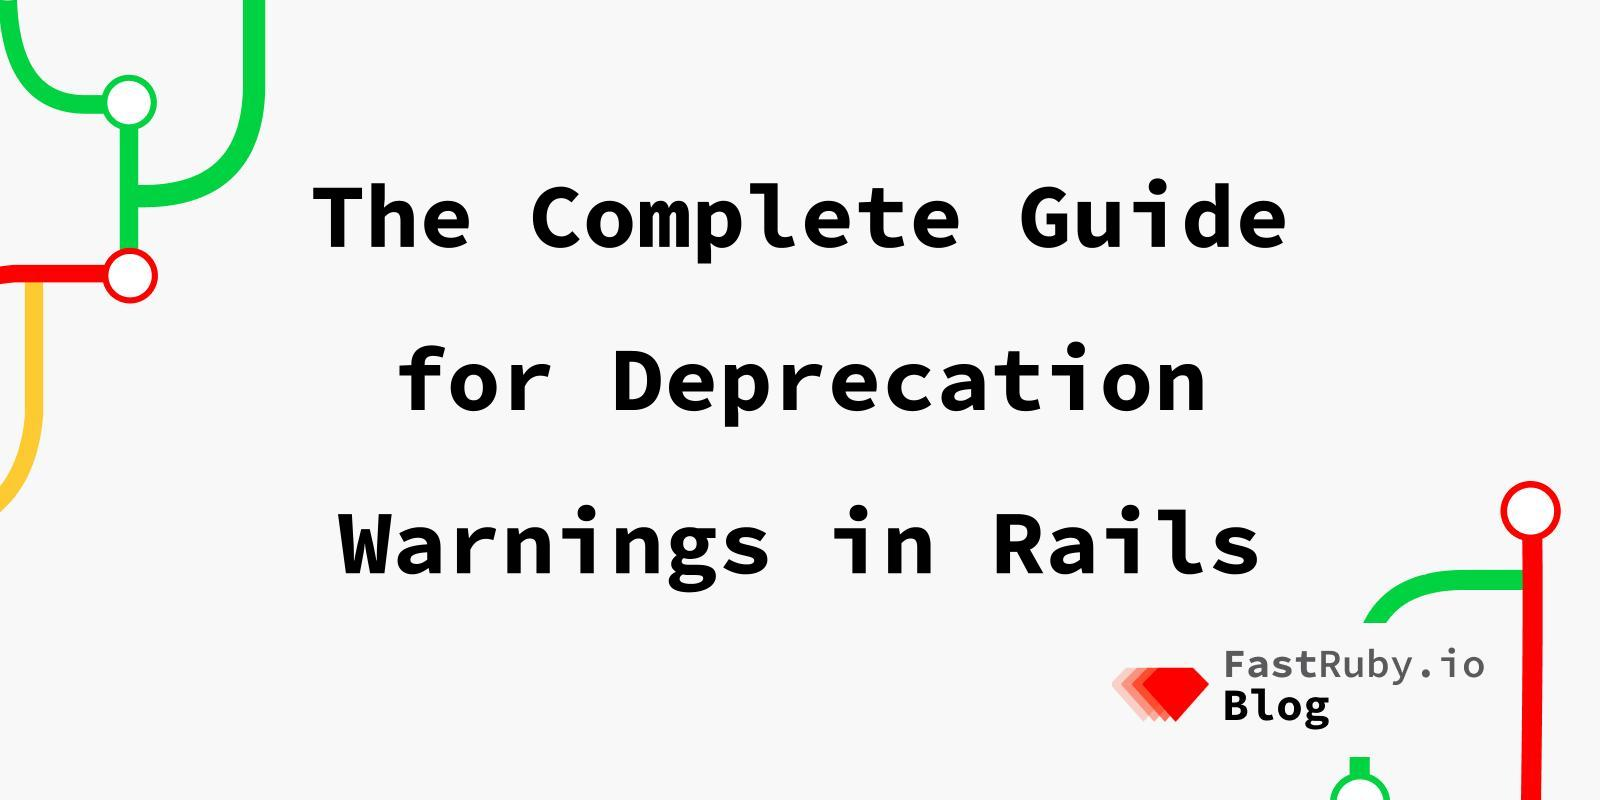 The Complete Guide for Deprecation Warnings in Rails